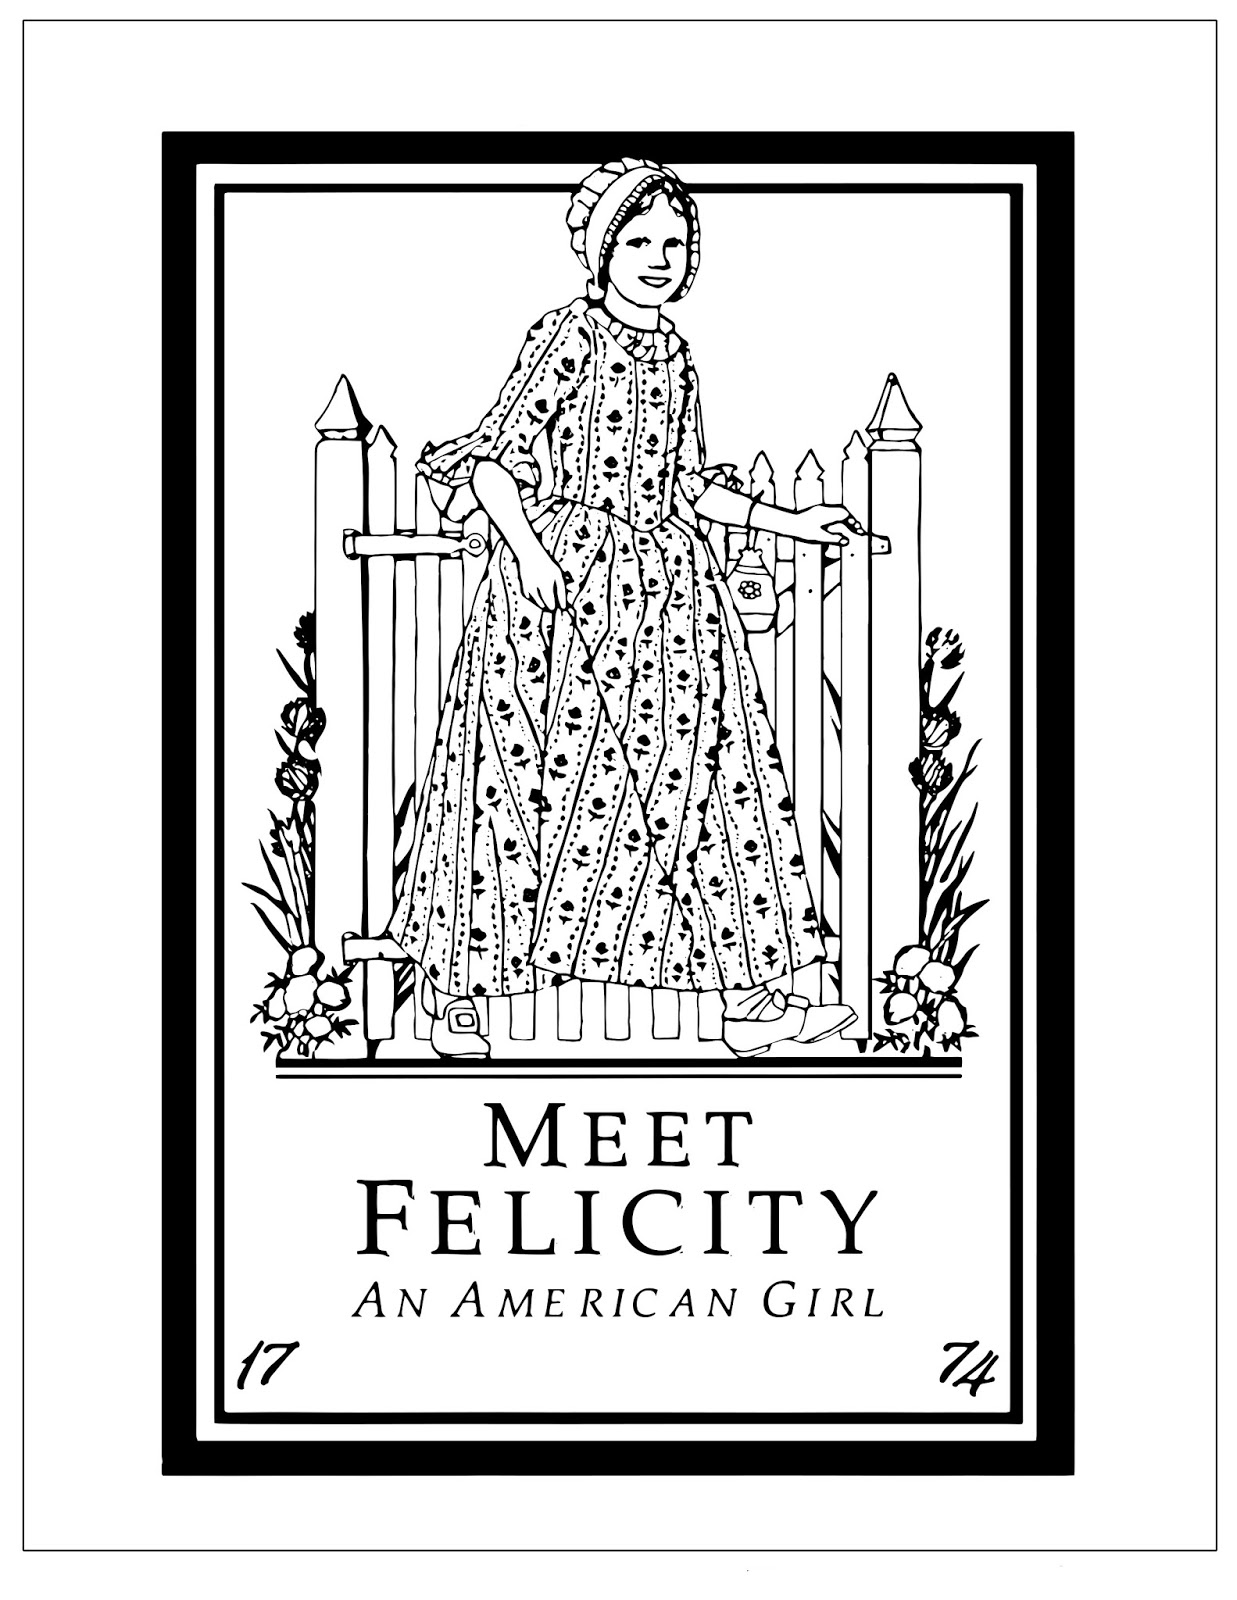 American Girl Doll Coloring Pages – coloring.rocks! | 1600x1237